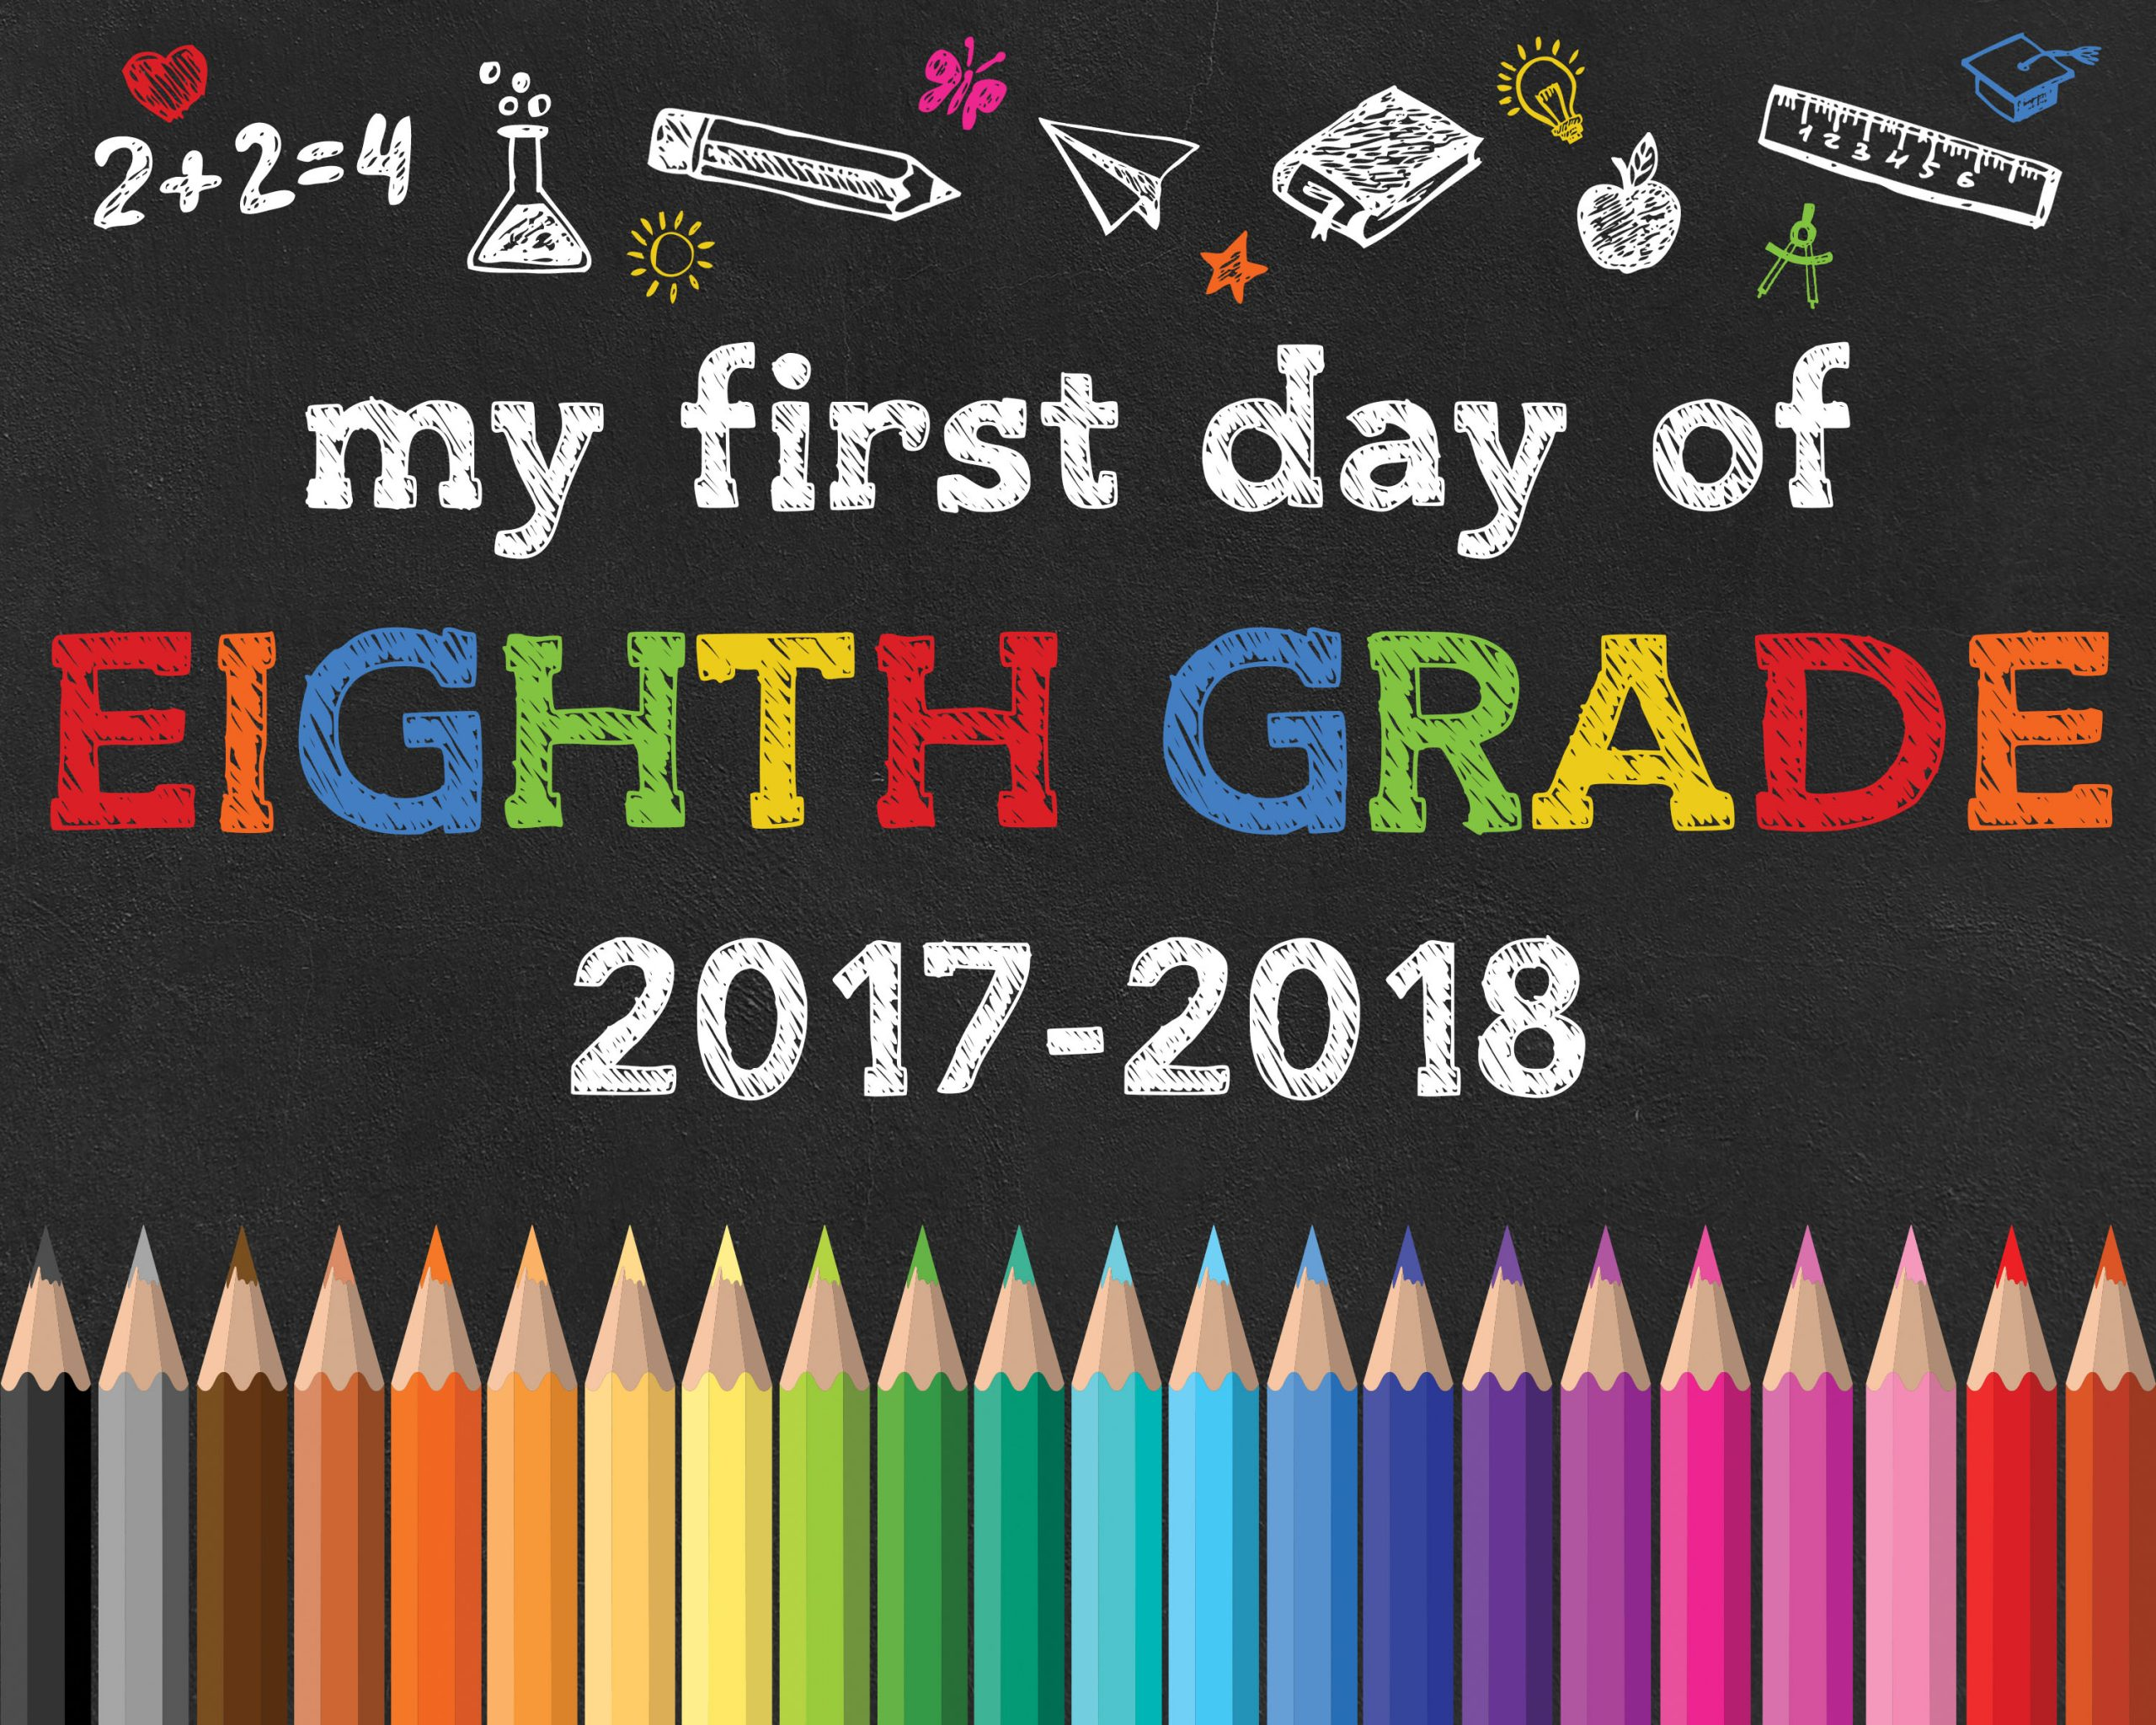 http://thecottagemarket.com/wp-content/uploads/2017/07/TCM-2017-2018-BacktoSchool-EighthGrade.jpg